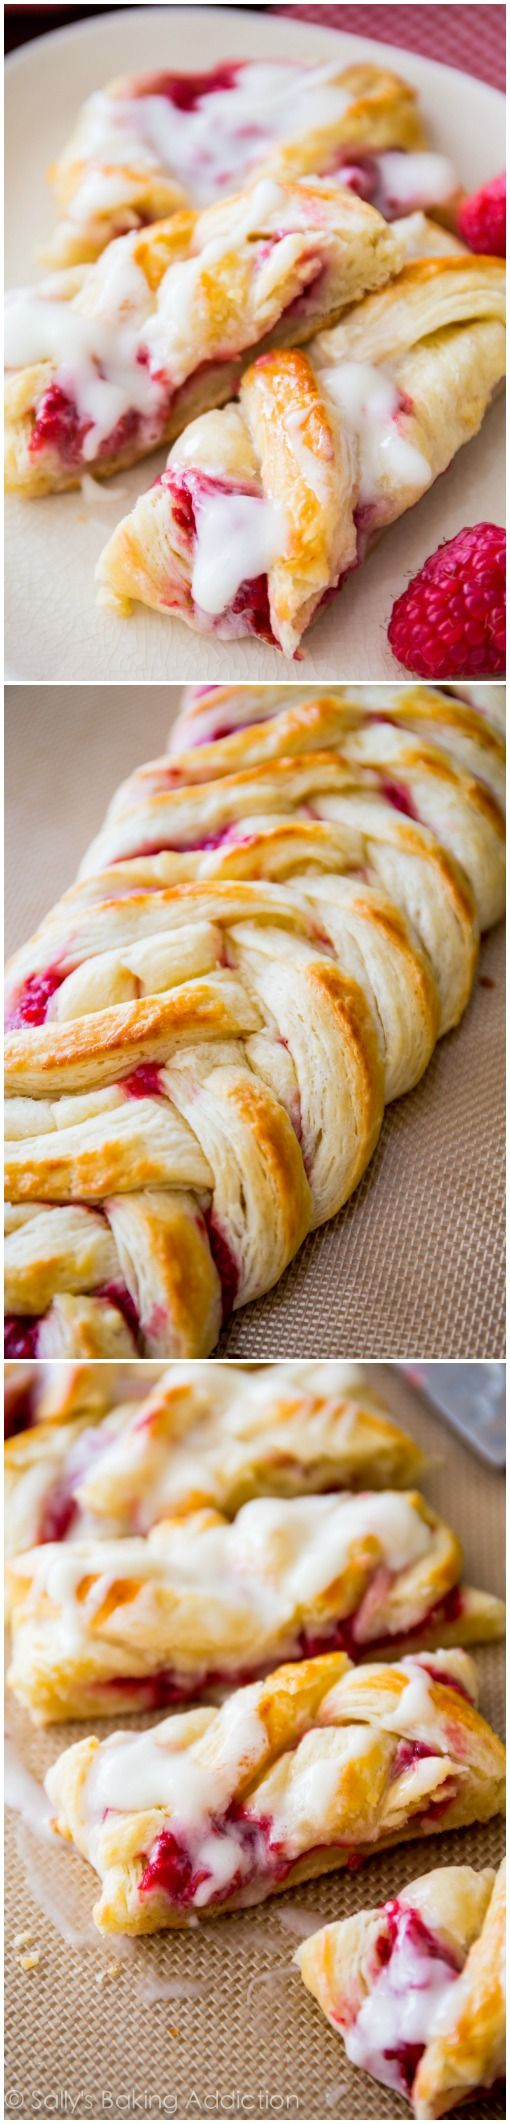 Danish Pastry Recipe From Scratch With Step By Photos Make This Delicious Iced Braid At Home Baking Recipes